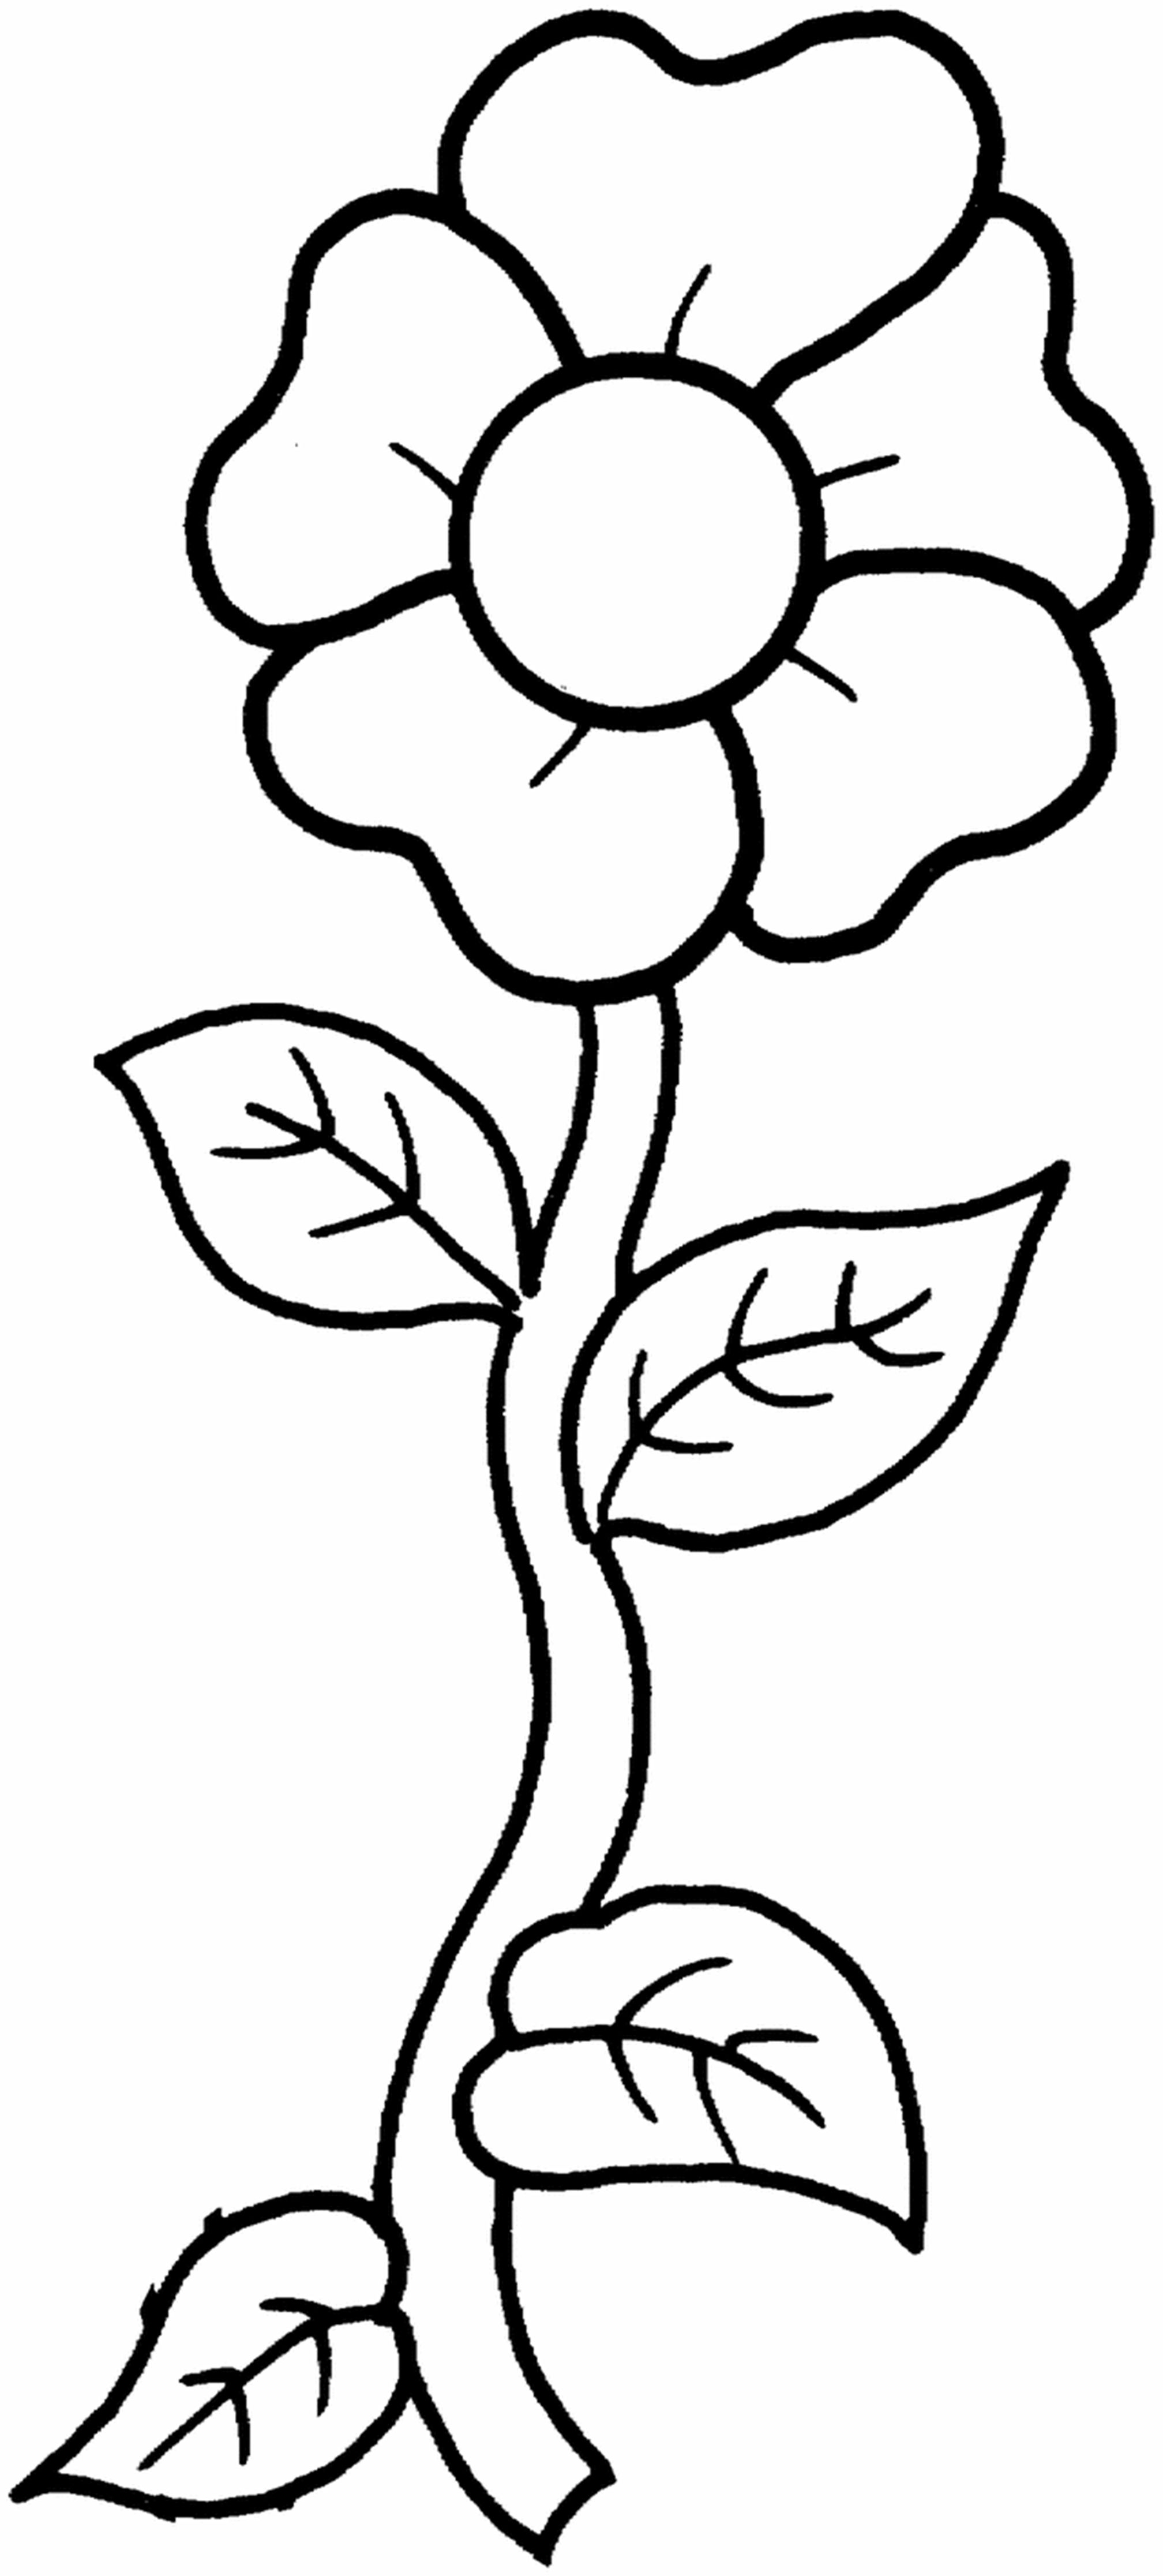 Free Printable Flower Coloring Pages For Kids Best | Coloring_Pages - Free Printable Flower Coloring Pages